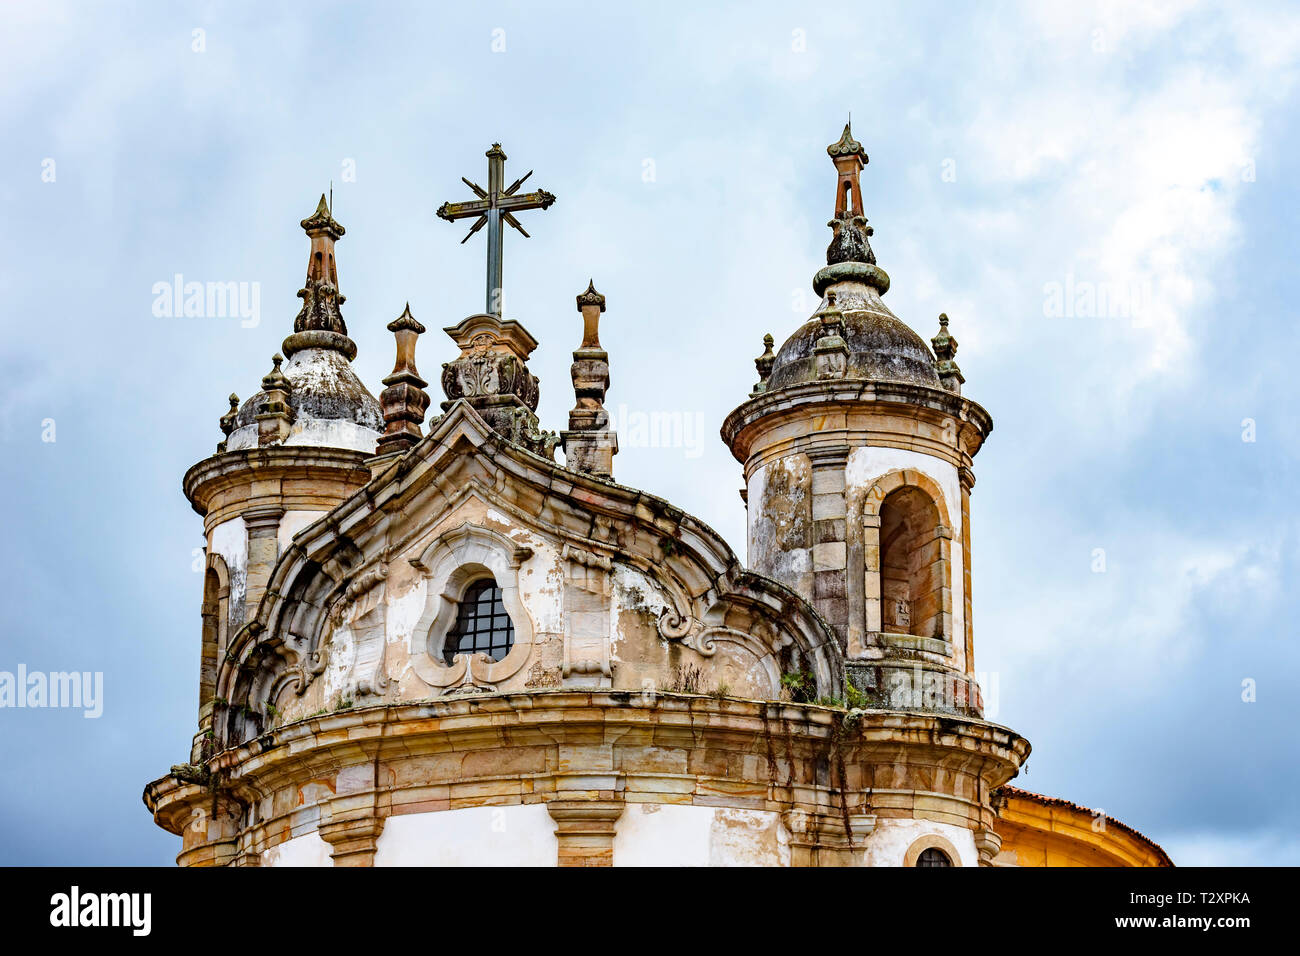 Old catholic church tower with ornaments of the 18th century located in the center of the famous and historical city of Ouro Preto in Minas Gerais - Stock Image